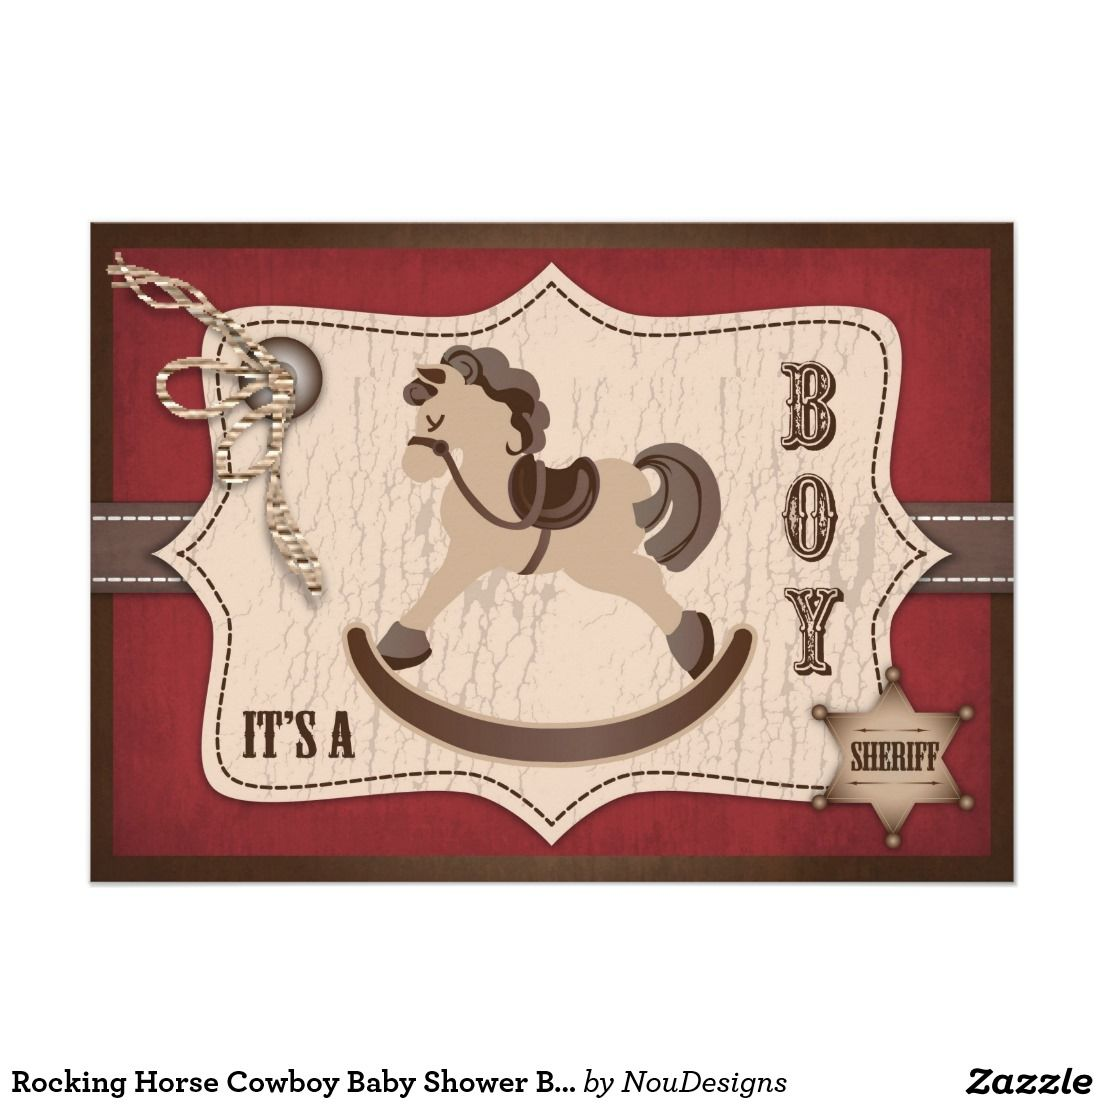 Rocking Horse Cowboy Baby Shower Barn Red 5x7 Paper Invitation Card